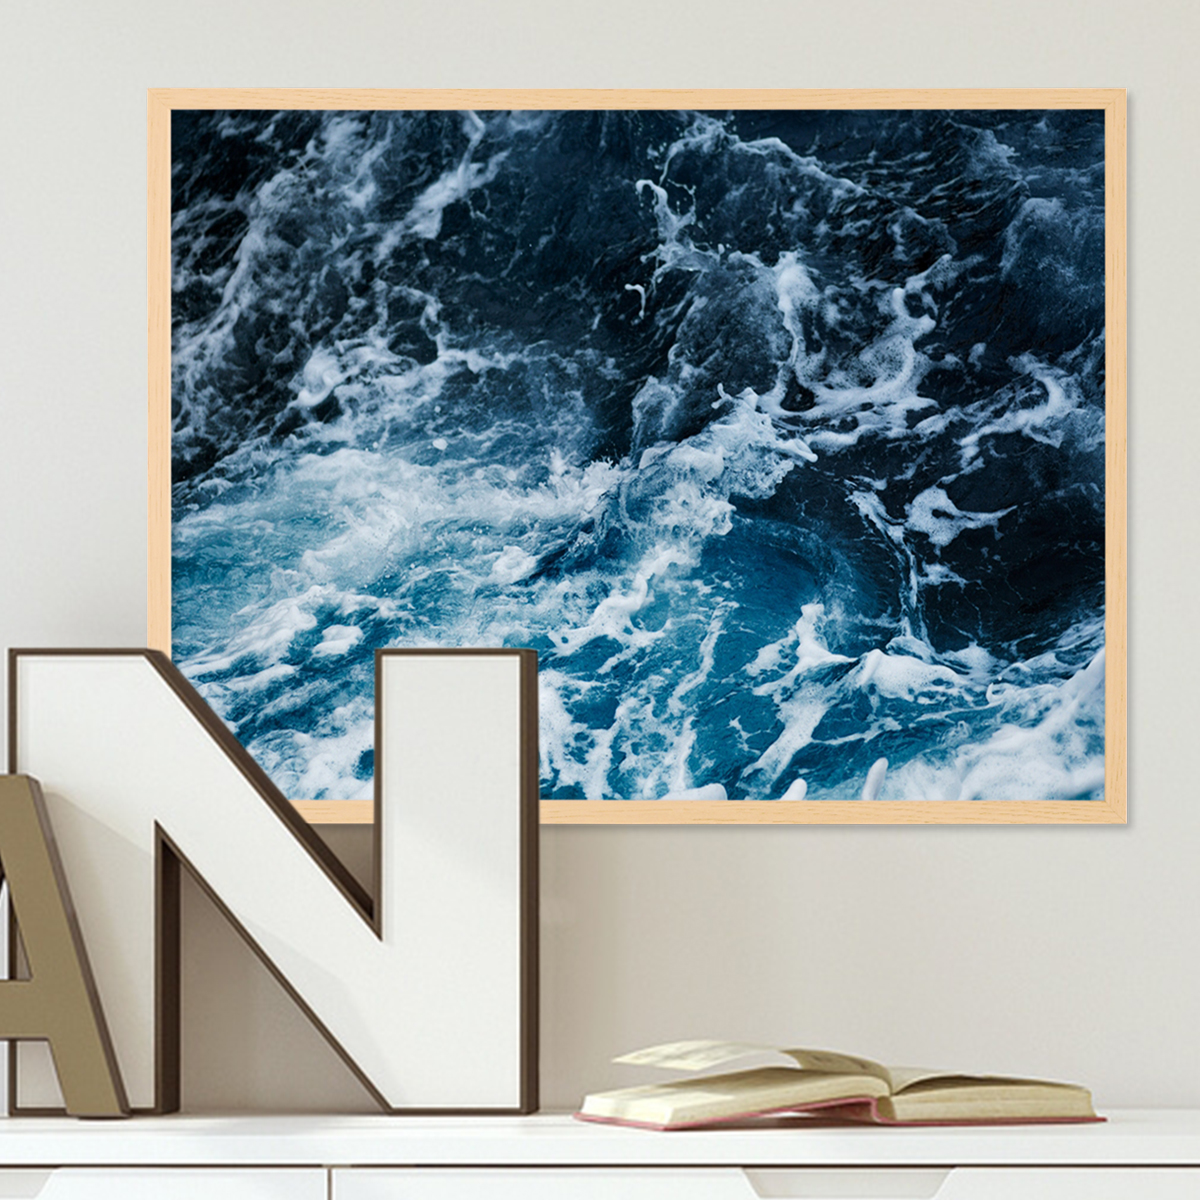 poster mit bilderrahmen natur 39 splashing 39 30x40 cm motiv wasser see ozean meer natur foto poster. Black Bedroom Furniture Sets. Home Design Ideas